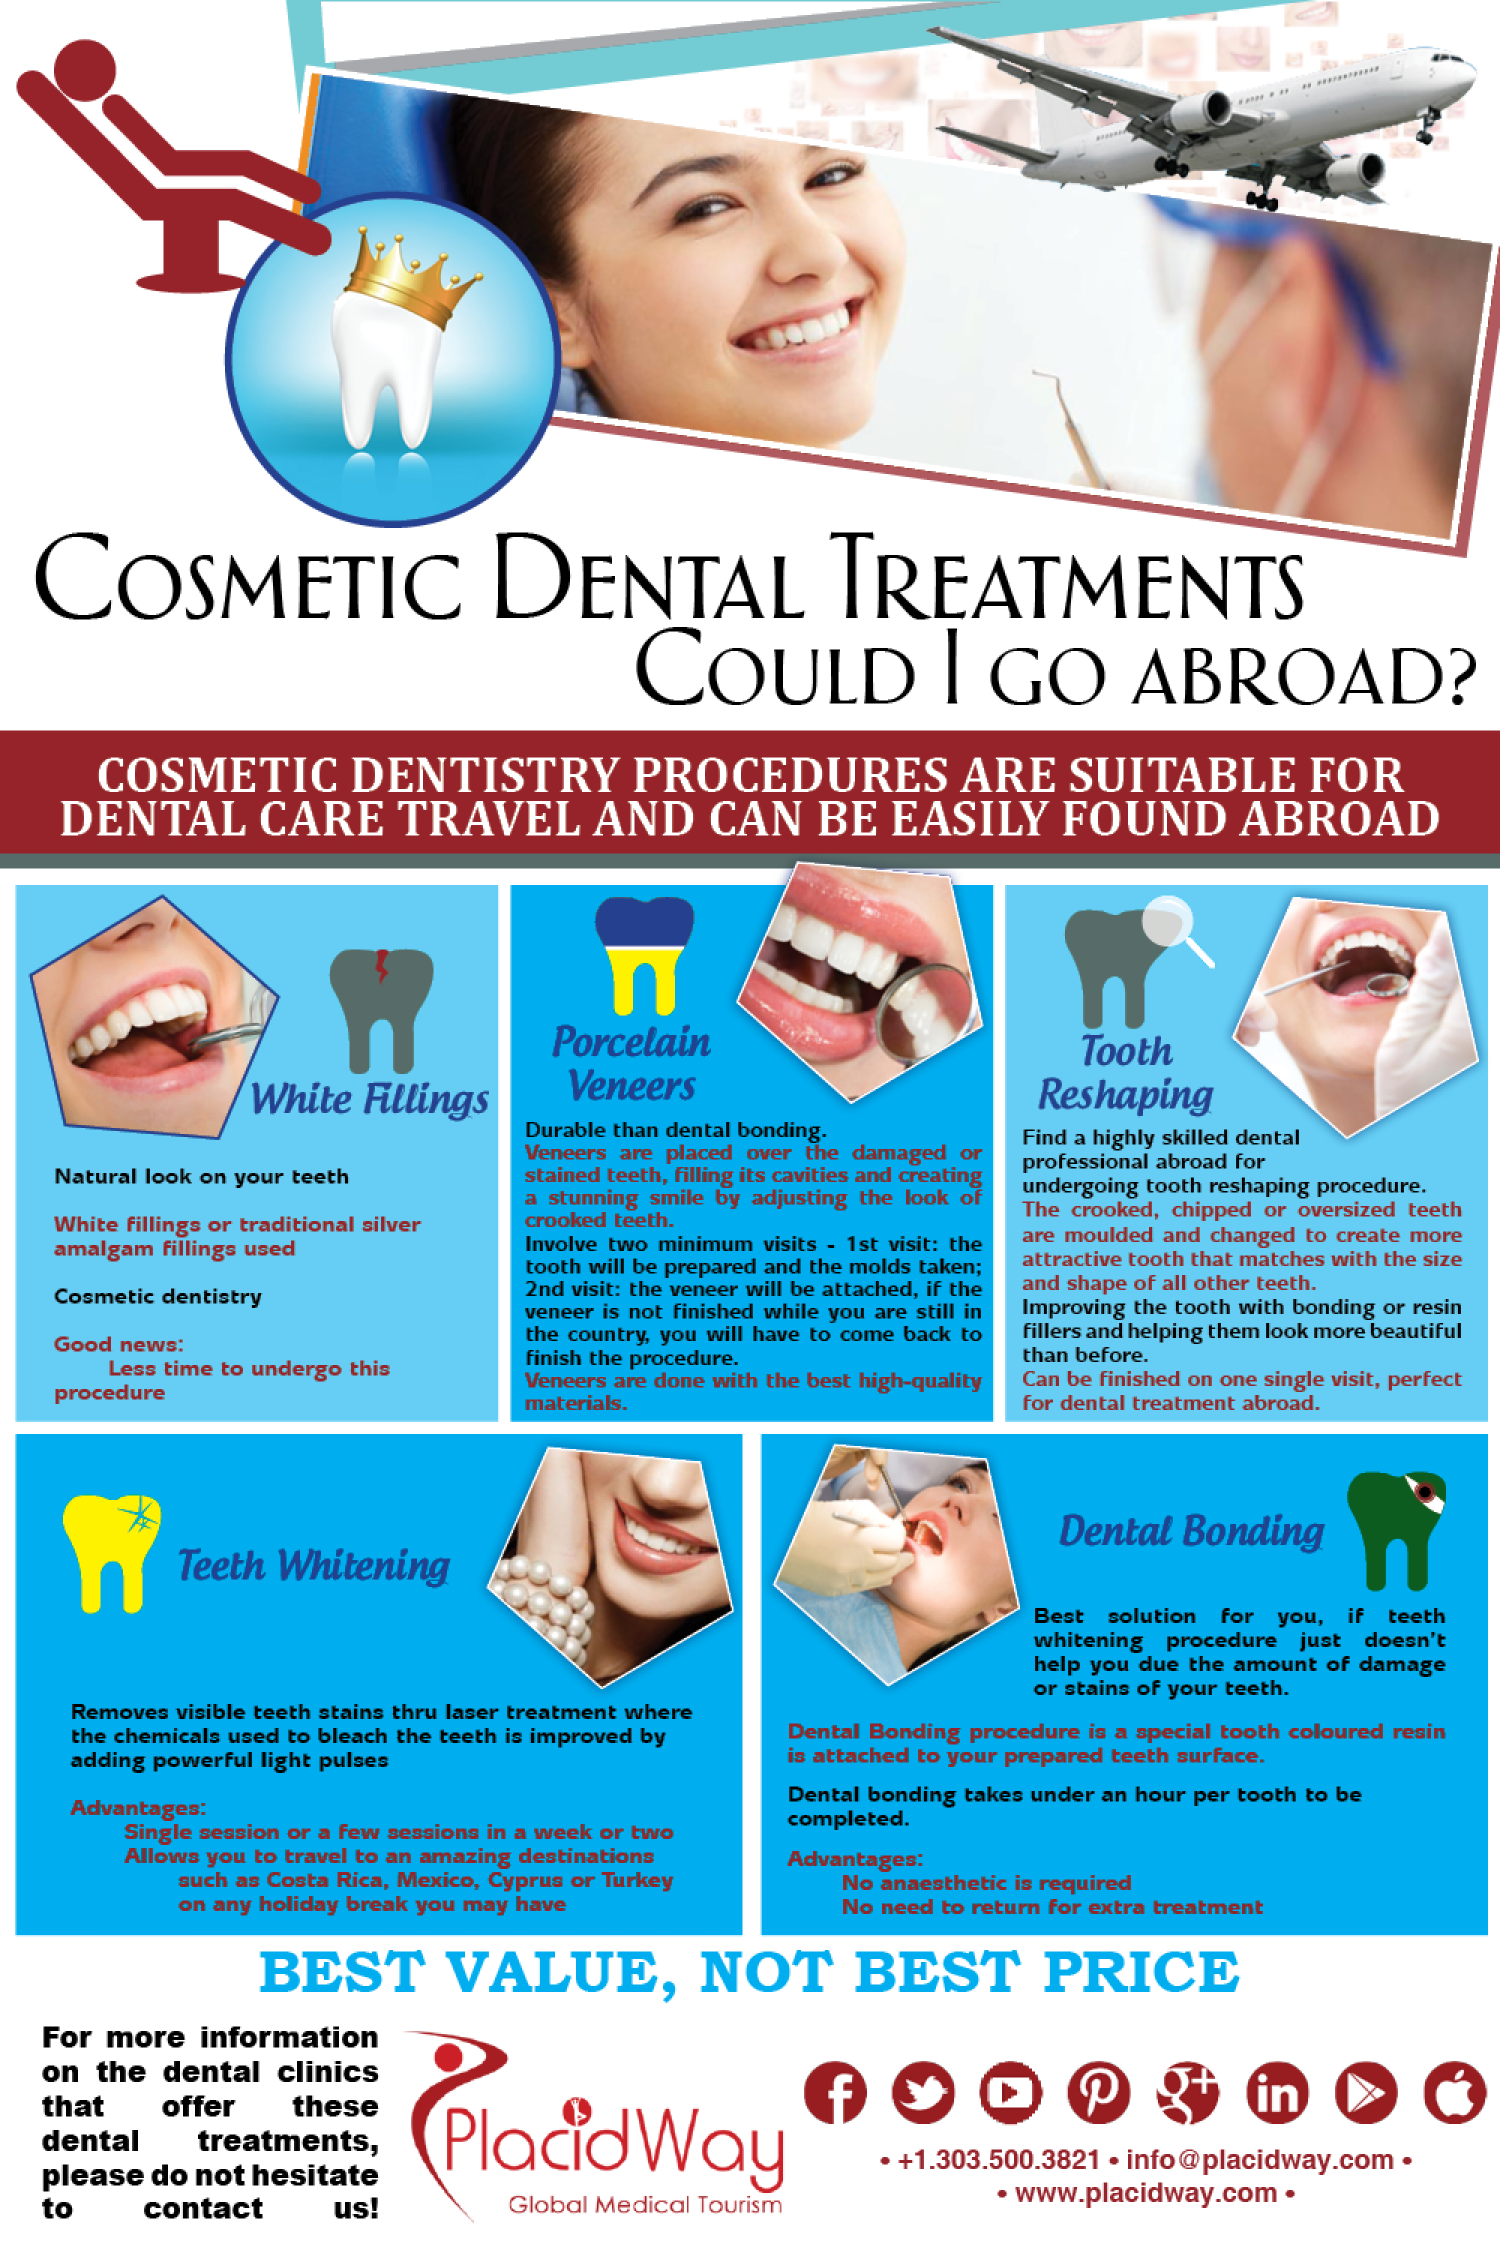 Cosmetic Dental Treatments Abroad Infographic